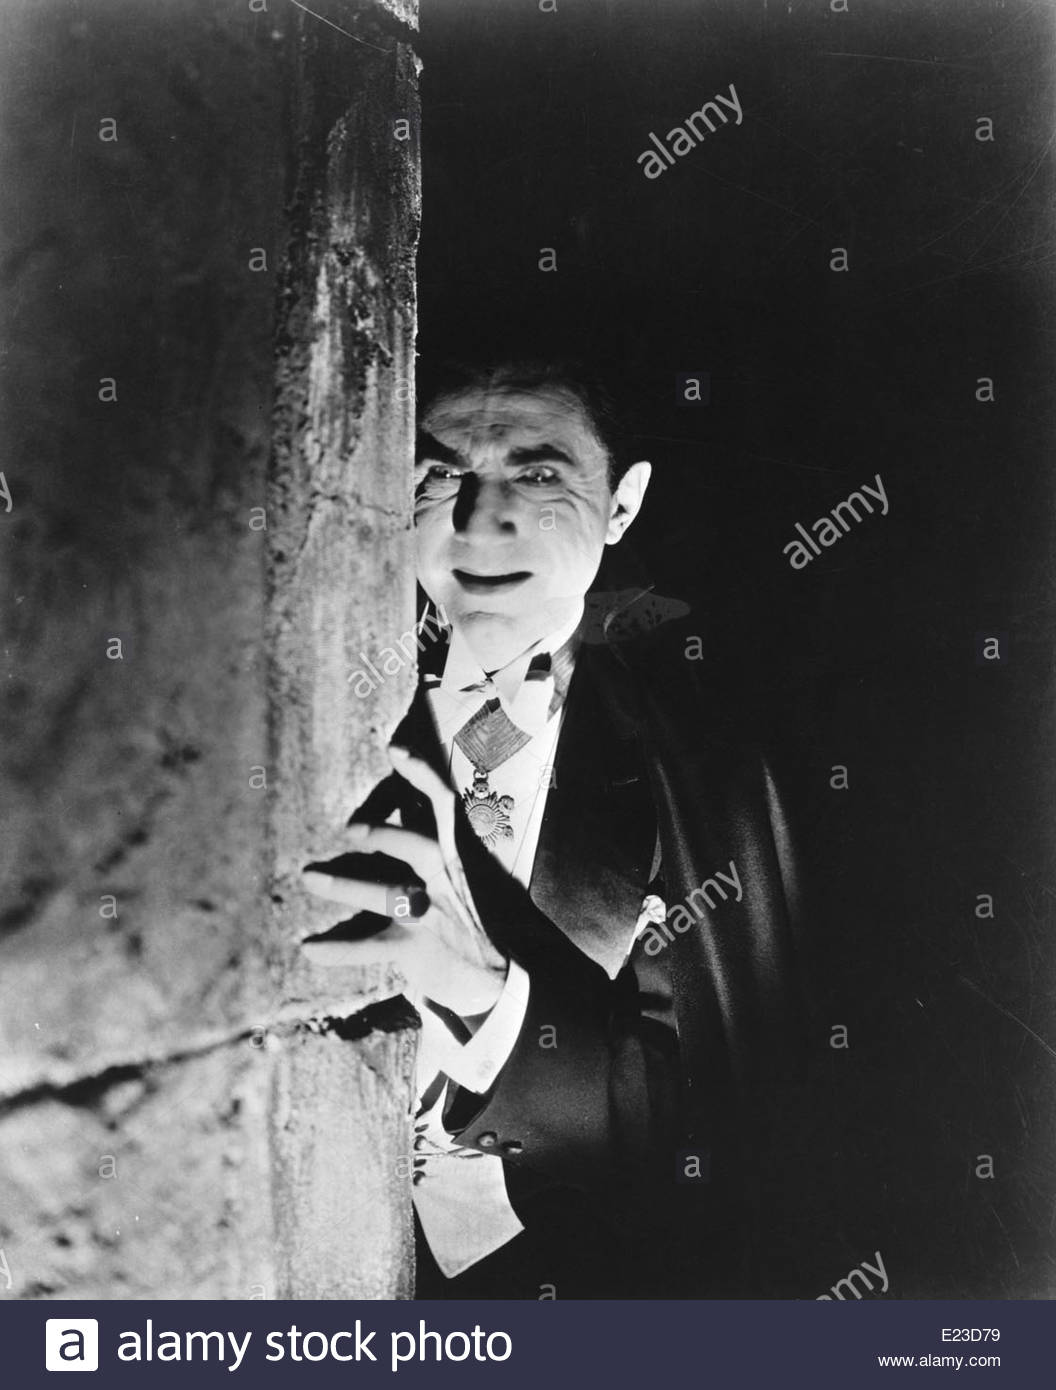 Bela Lugosi as Dracula, 1931, directed by Tod Browning. Photo Courtesy Courtesy Granamour Weems Collection. - Stock Image